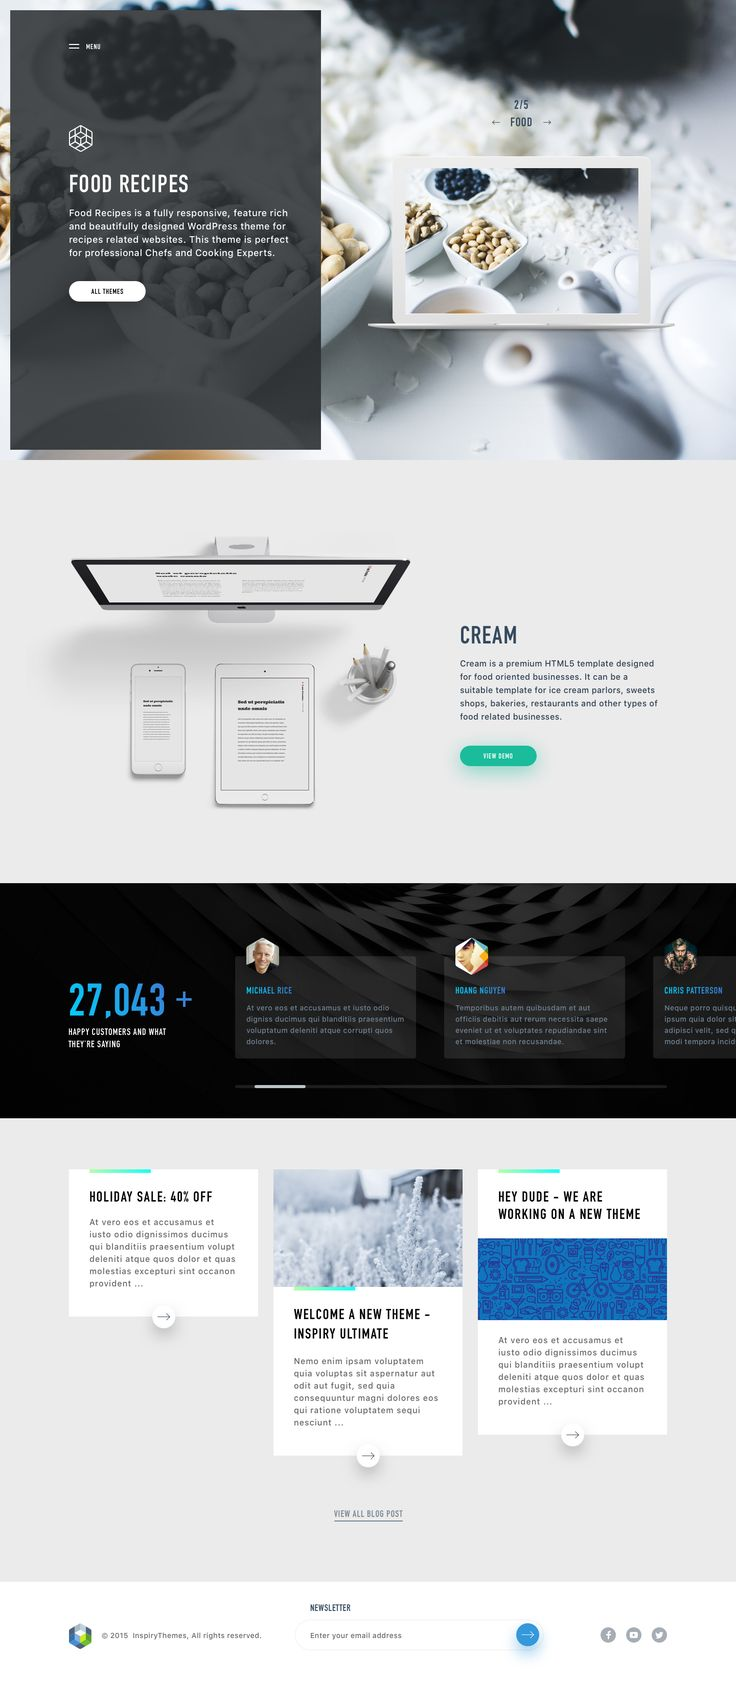 Theme Provider - Food homepage Ui concept redesign by Hoang Nguyen.